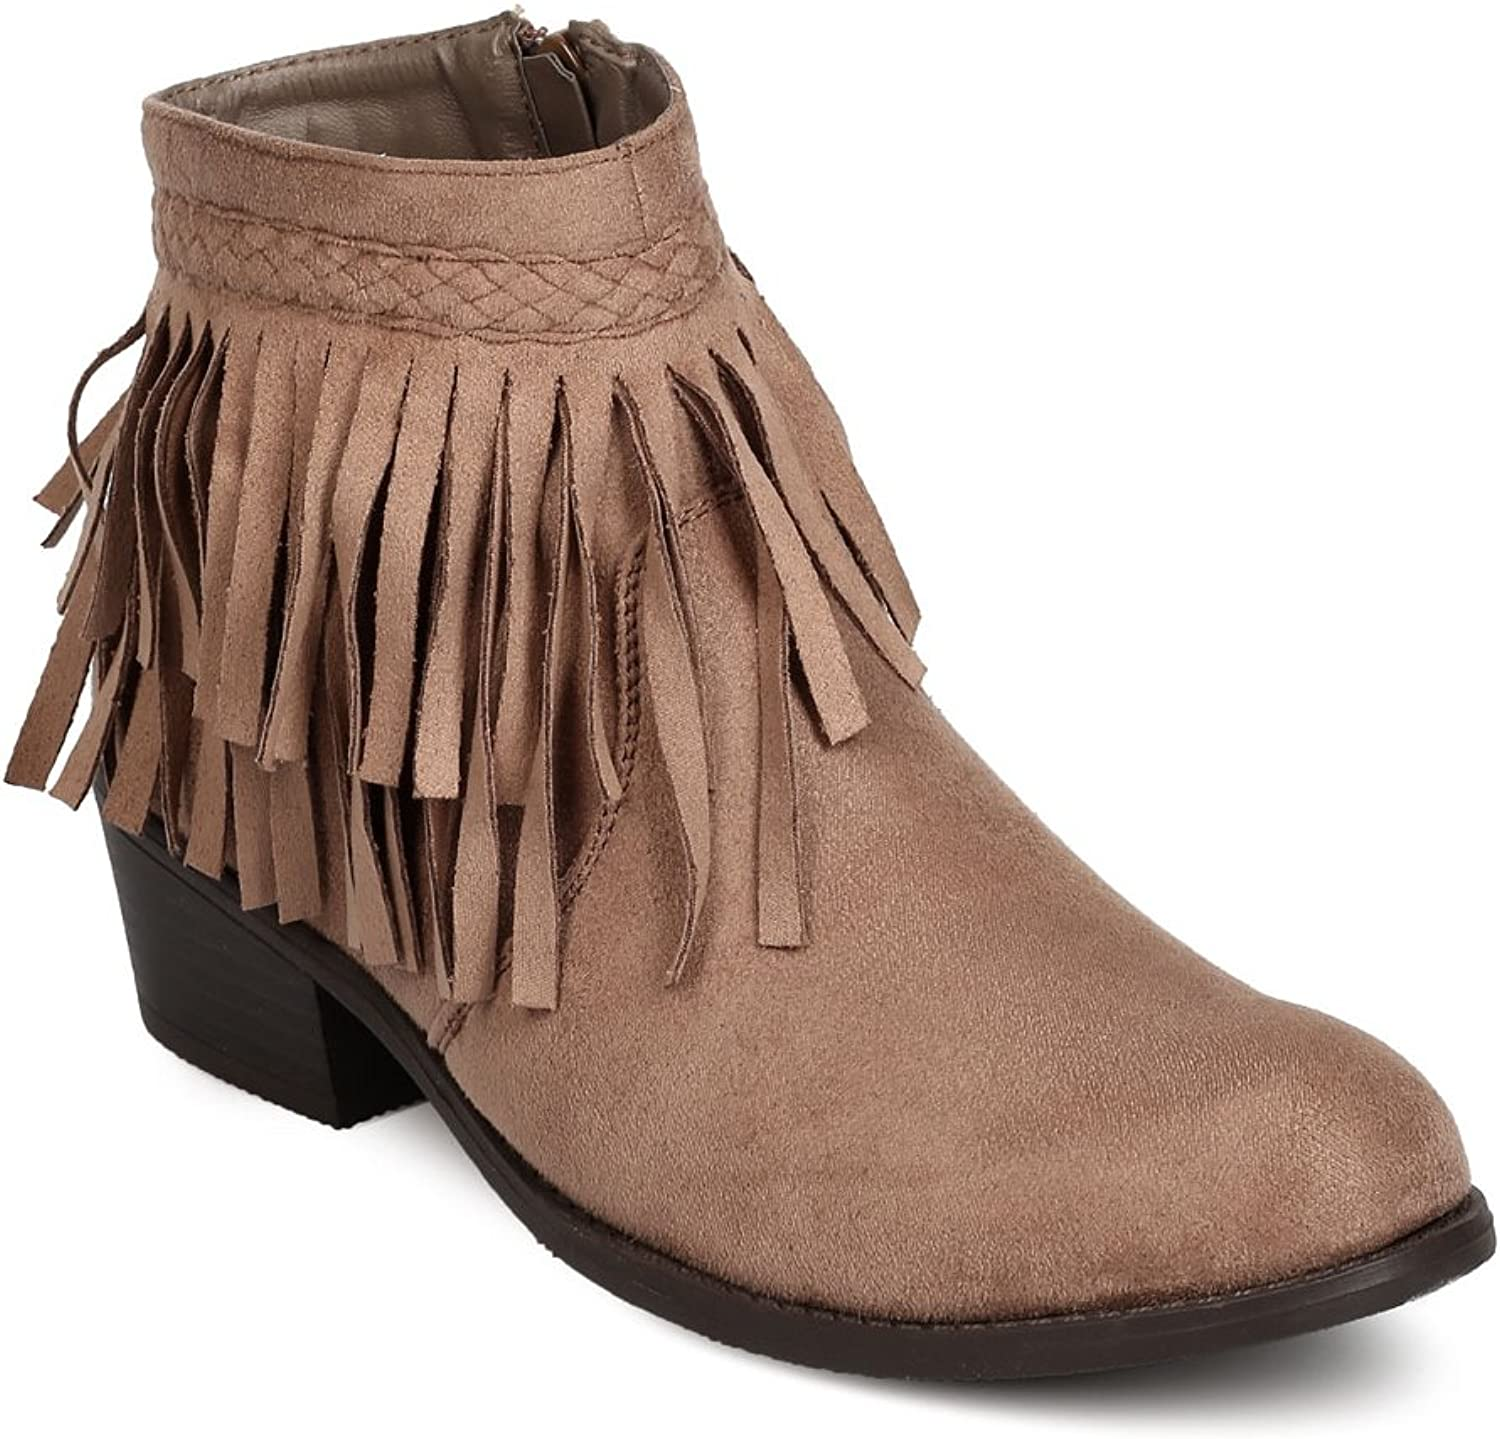 ShoBeautiful Women's Fringe Chunky Booties Western Cowgirl Boho Side Zipper Braided Low Block Heel Casual Boots